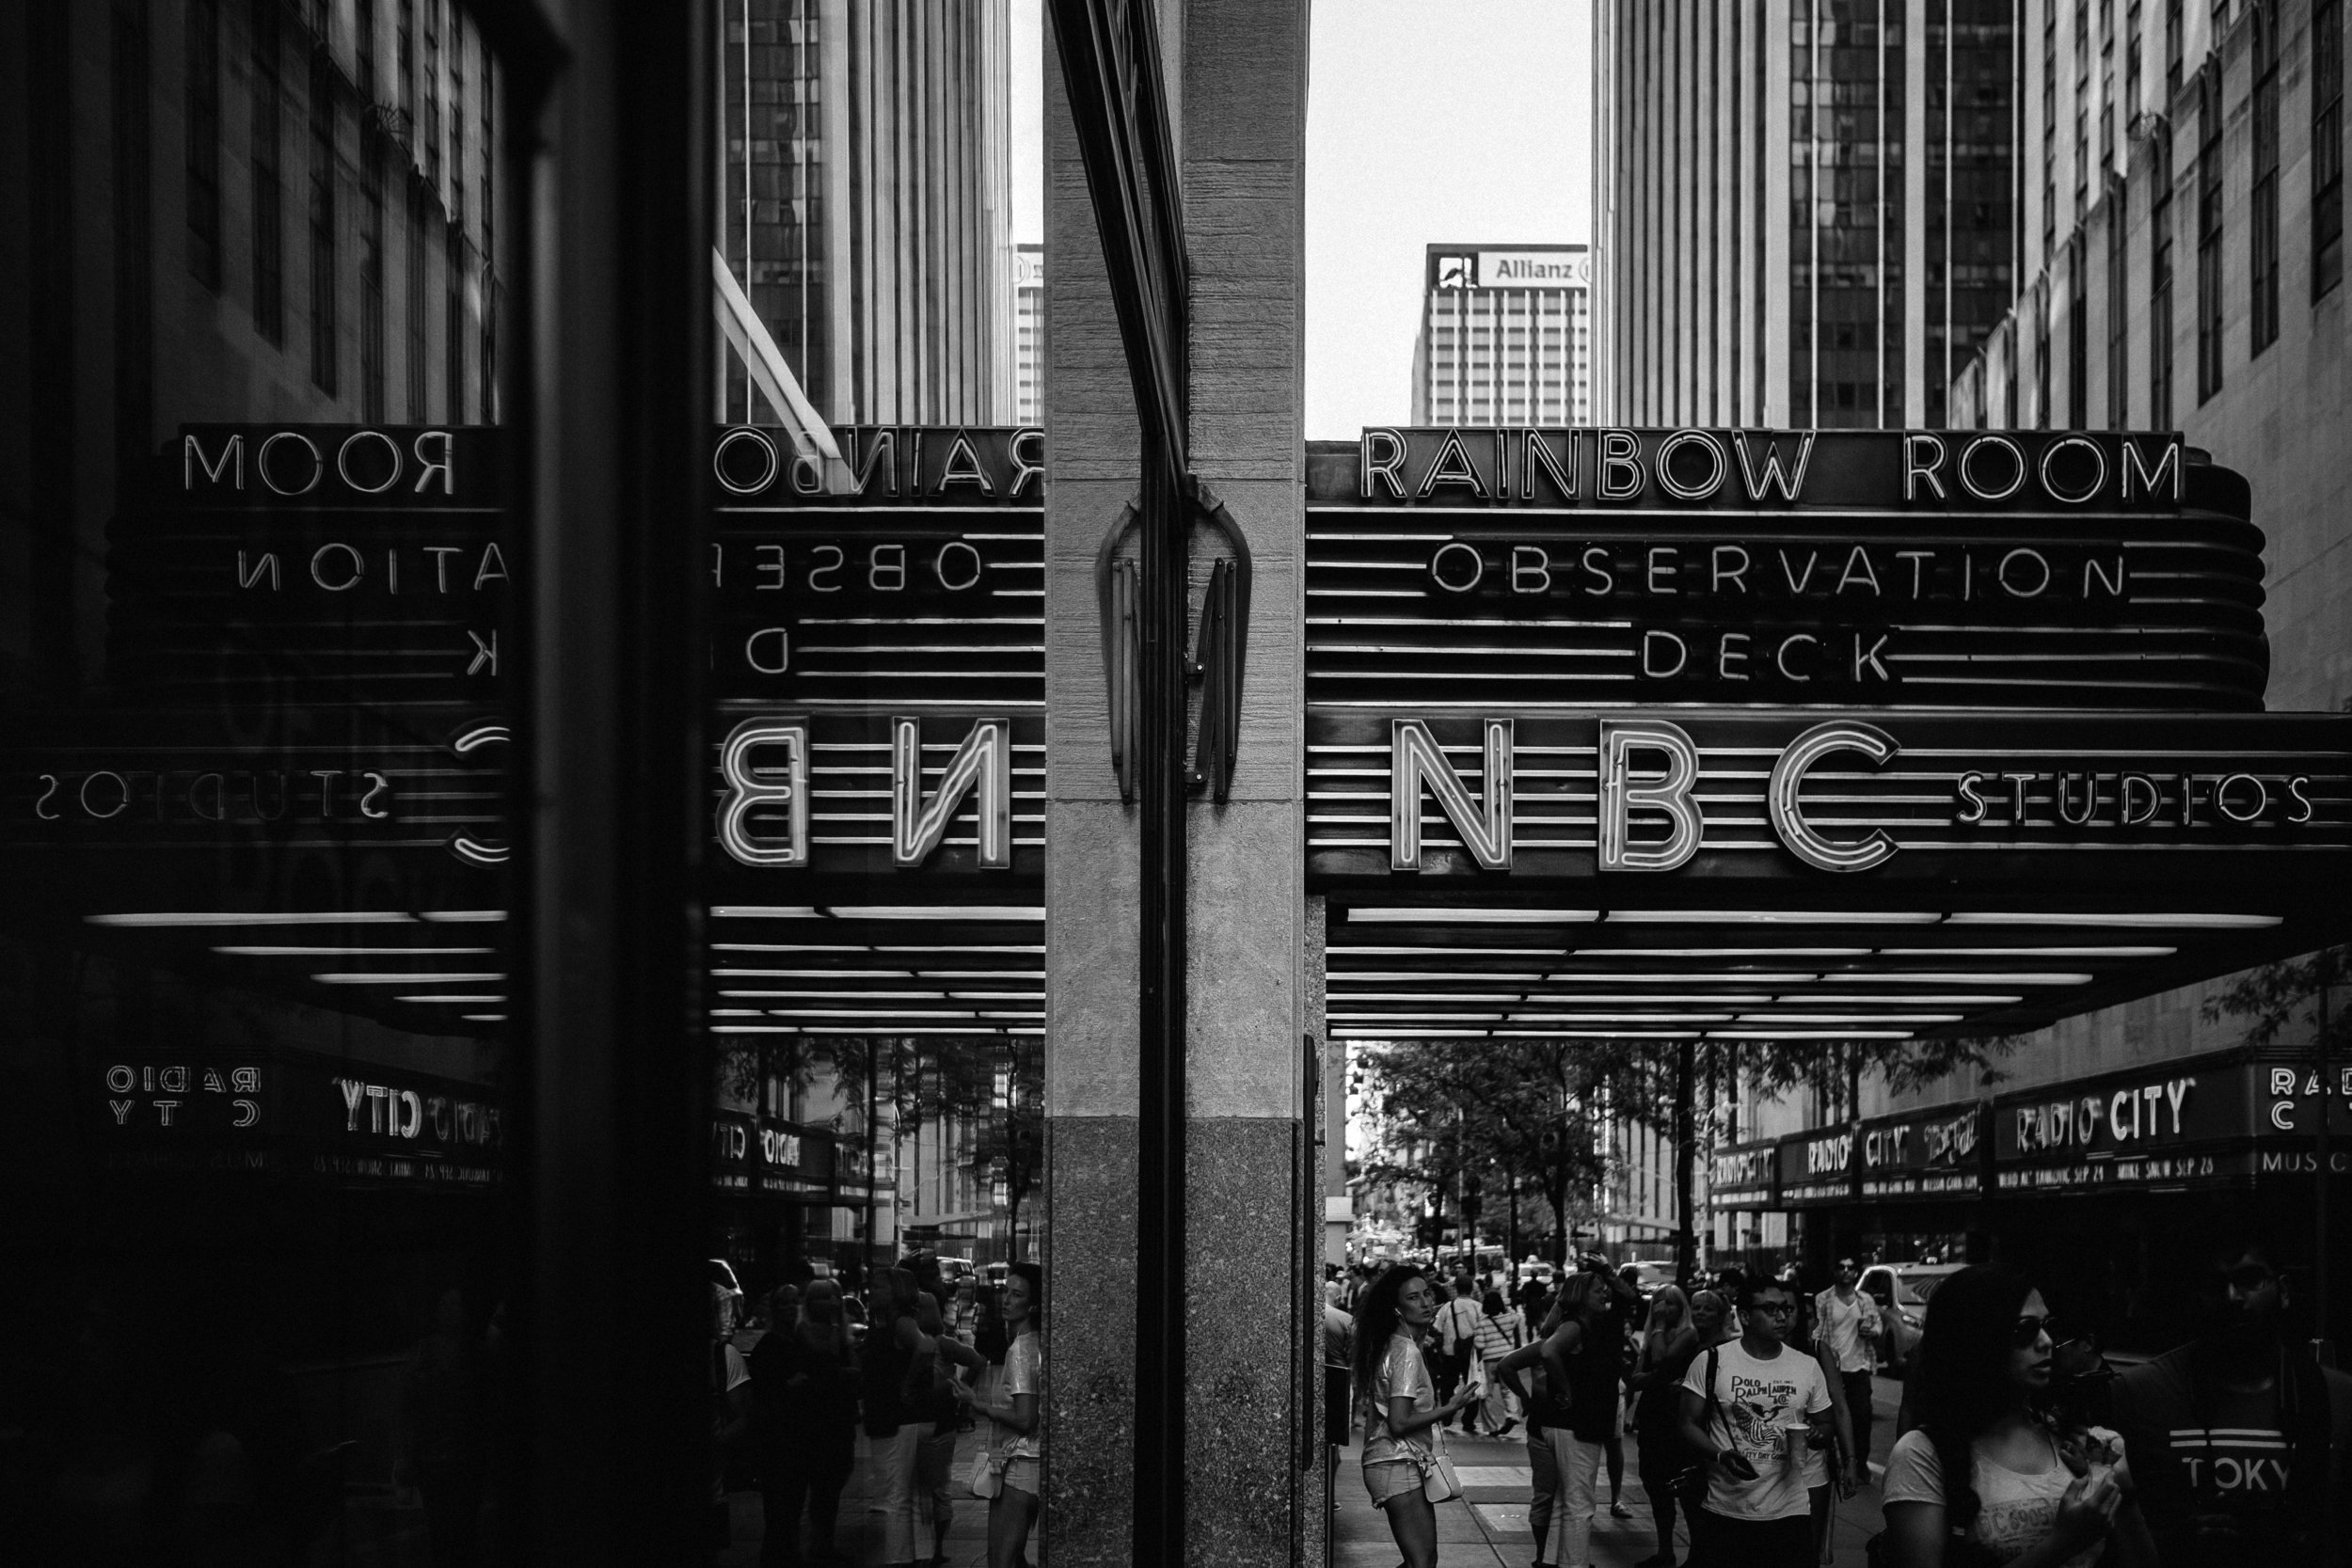 nbc-new-york-signage.jpg